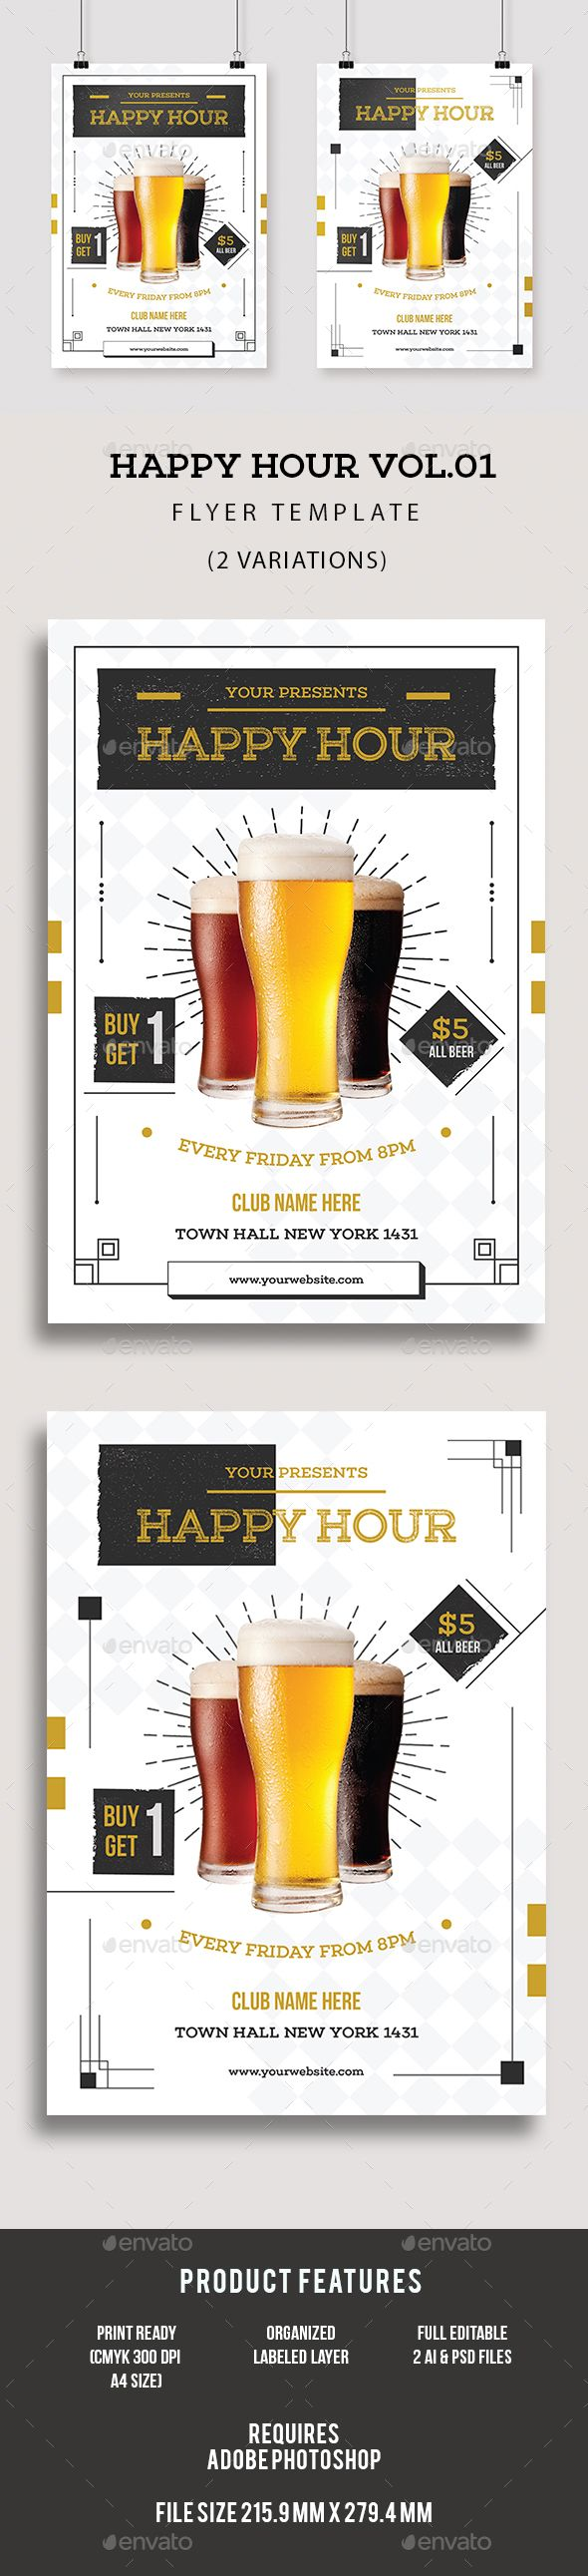 happy hour flyer print templates flyers events tagged as art deco